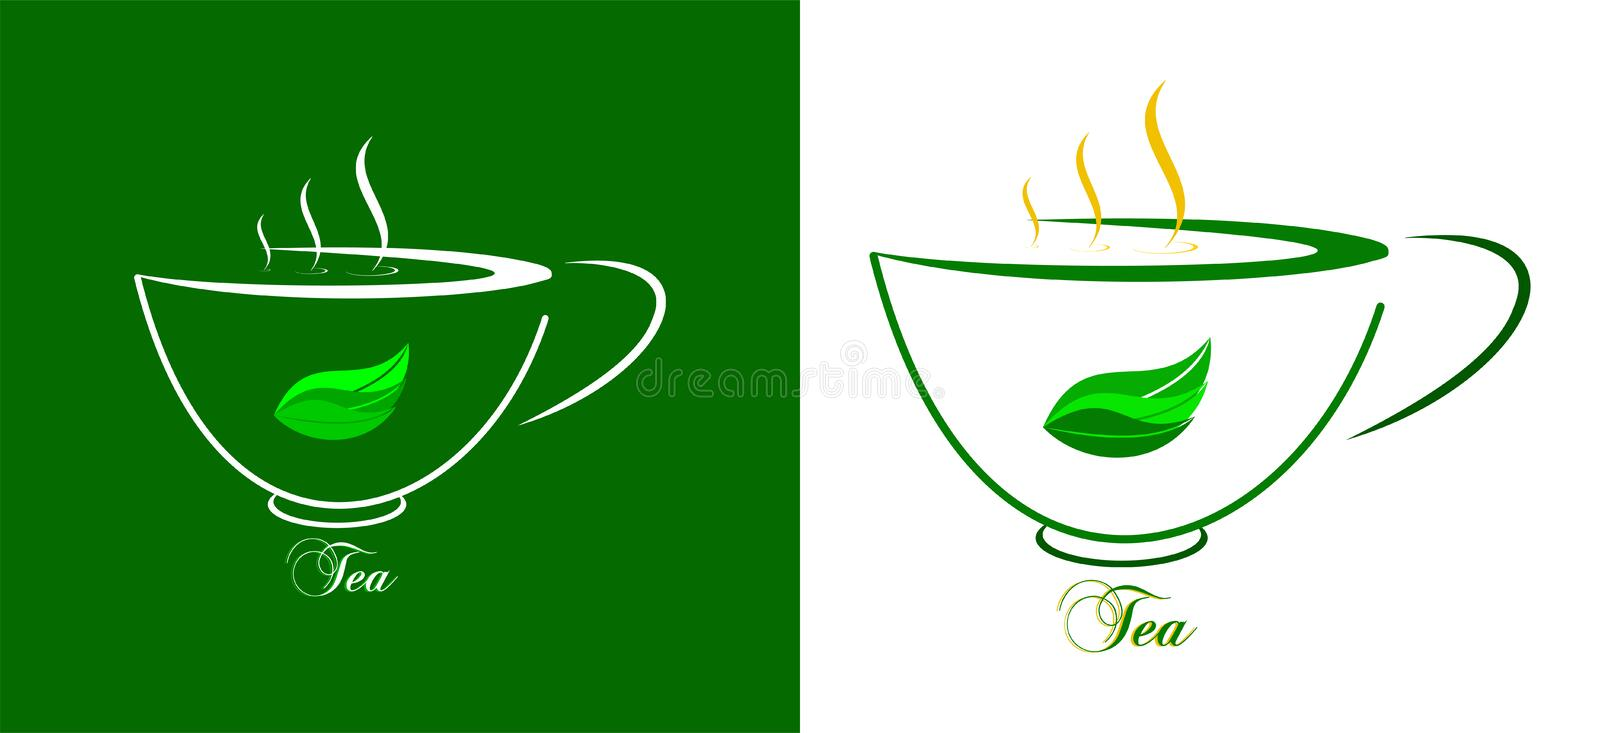 Cup of green tea with green leaves on white and green background. A cup of tea. Graphics on a green and white background. Green leaves on the background of a cup stock illustration